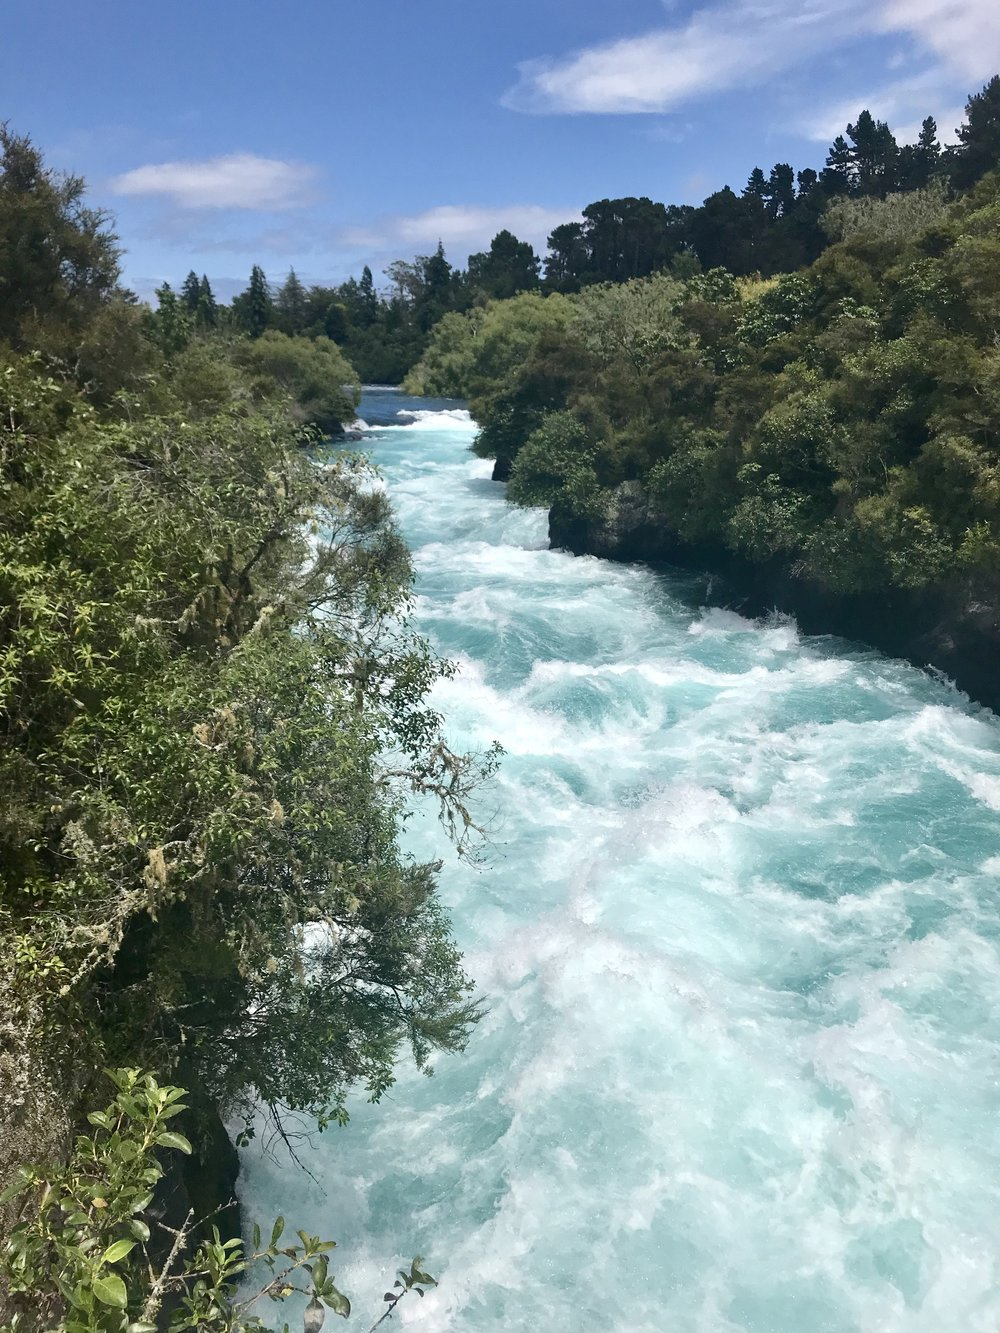 The water at Huka Falls is an amazing tropical turquoise.